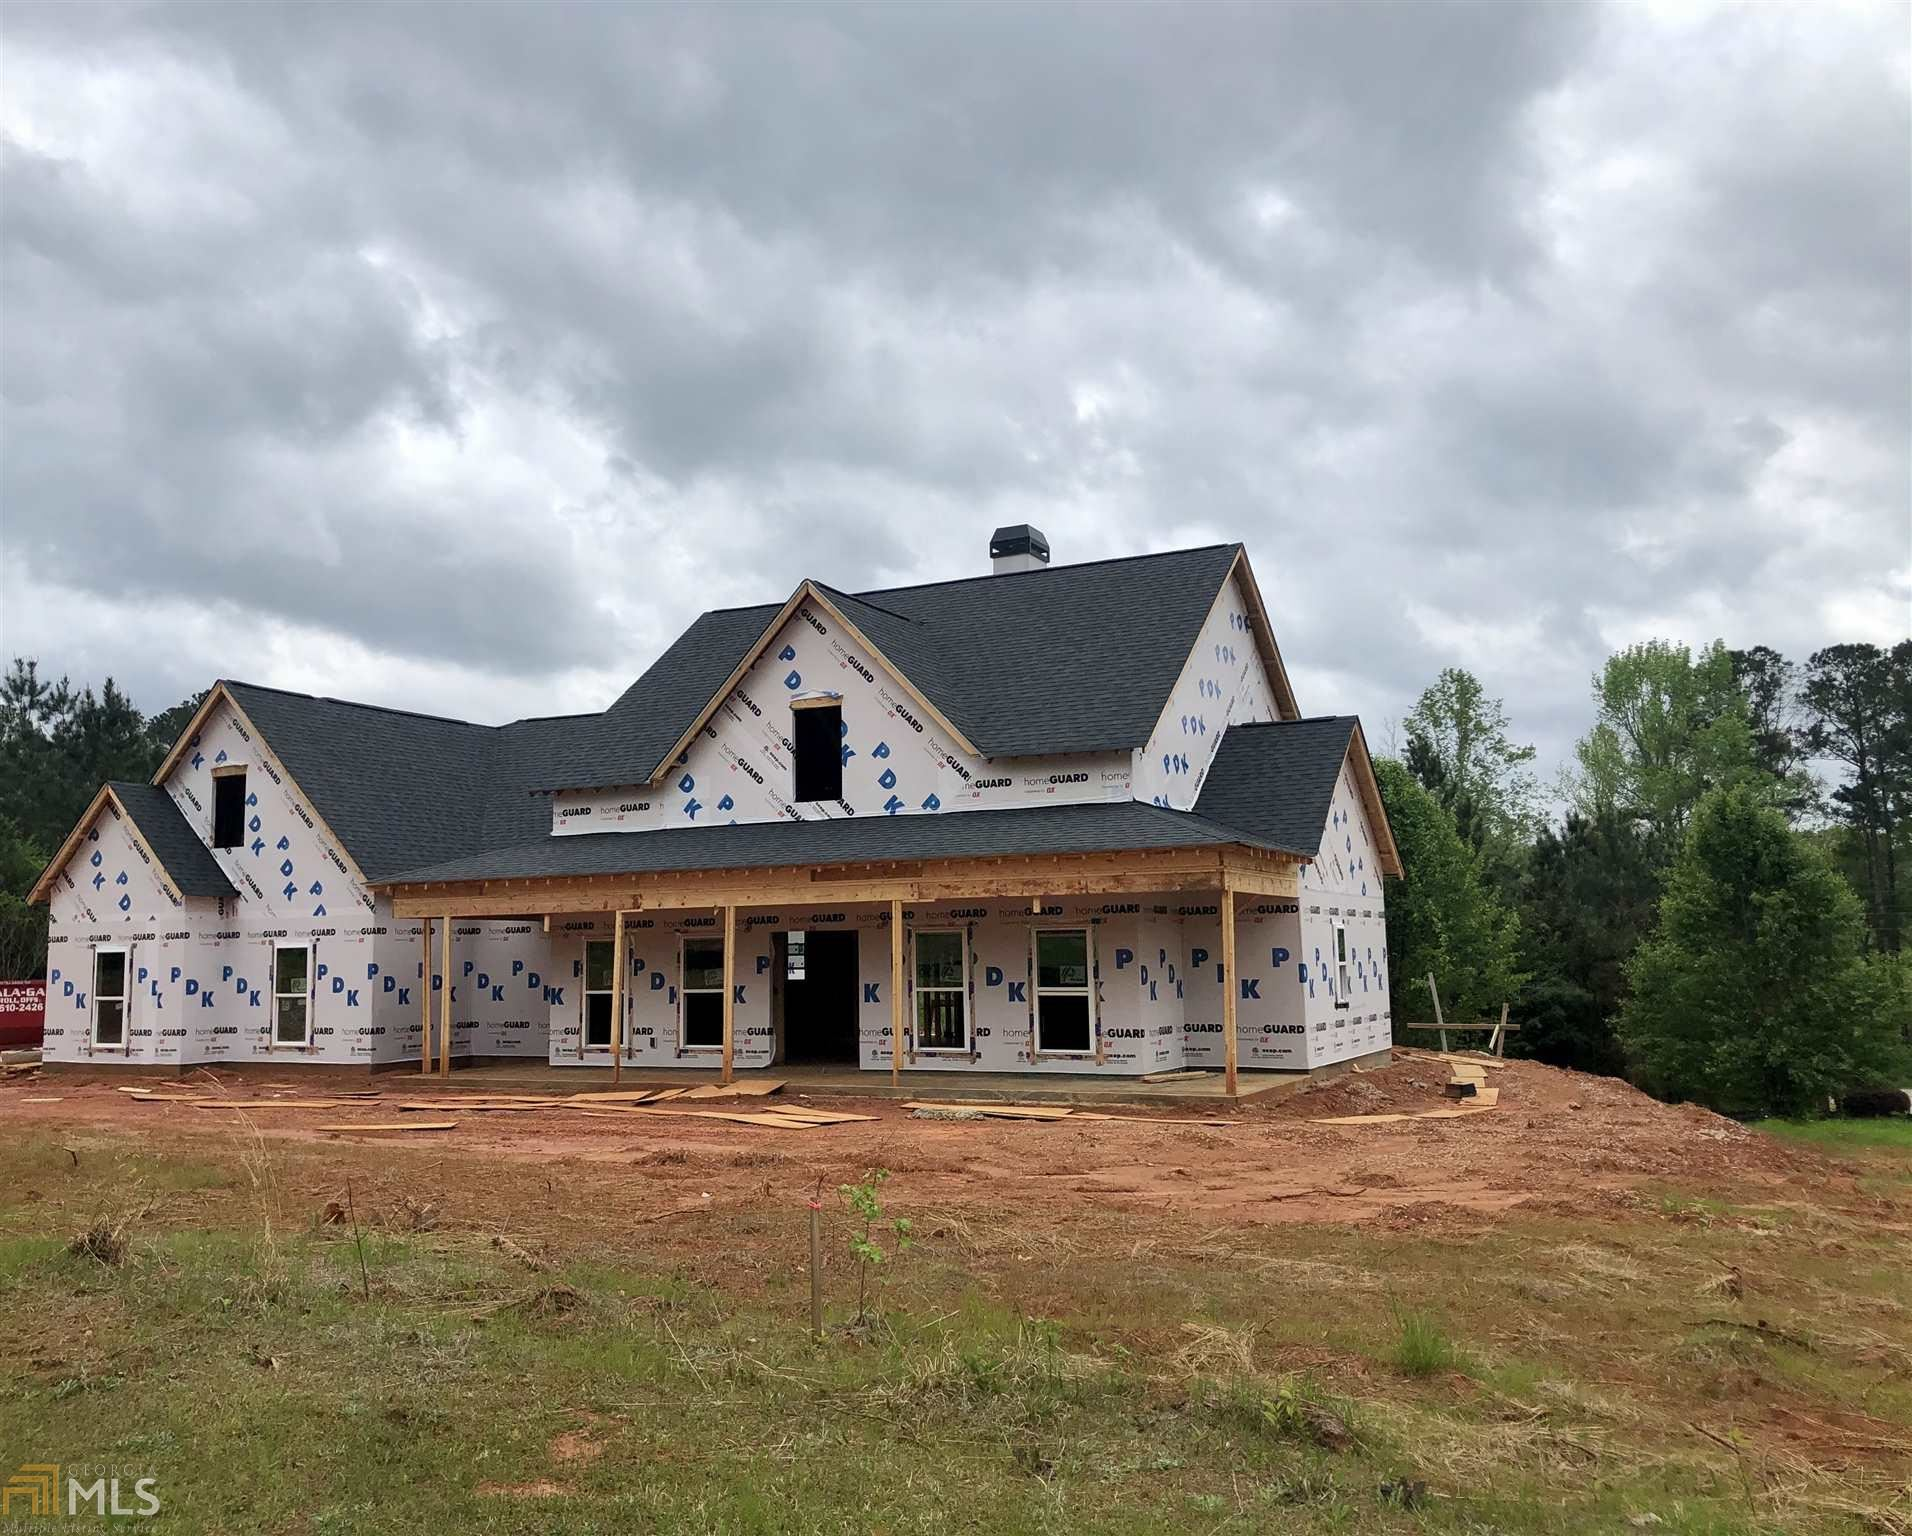 100 Landings Way, LaGrange, GA 30240 - #: 8952909